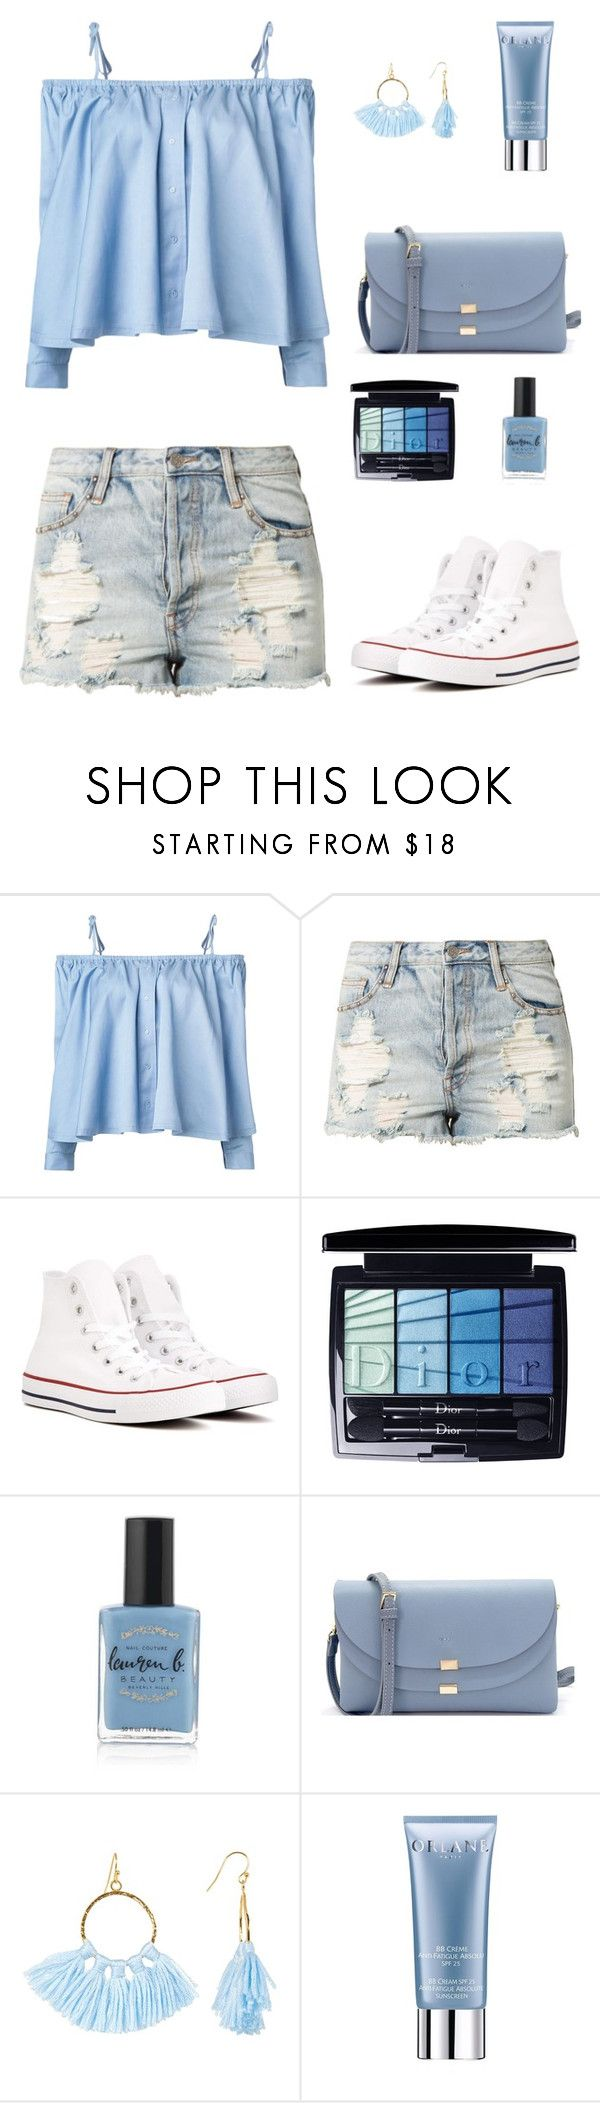 """""""Summer Fun"""" by marion-fashionista-diva-miller ❤ liked on Polyvore featuring Sandy Liang, Evil Twin, Converse, Christian Dior, Lauren B. Beauty, Taolei and Orlane"""